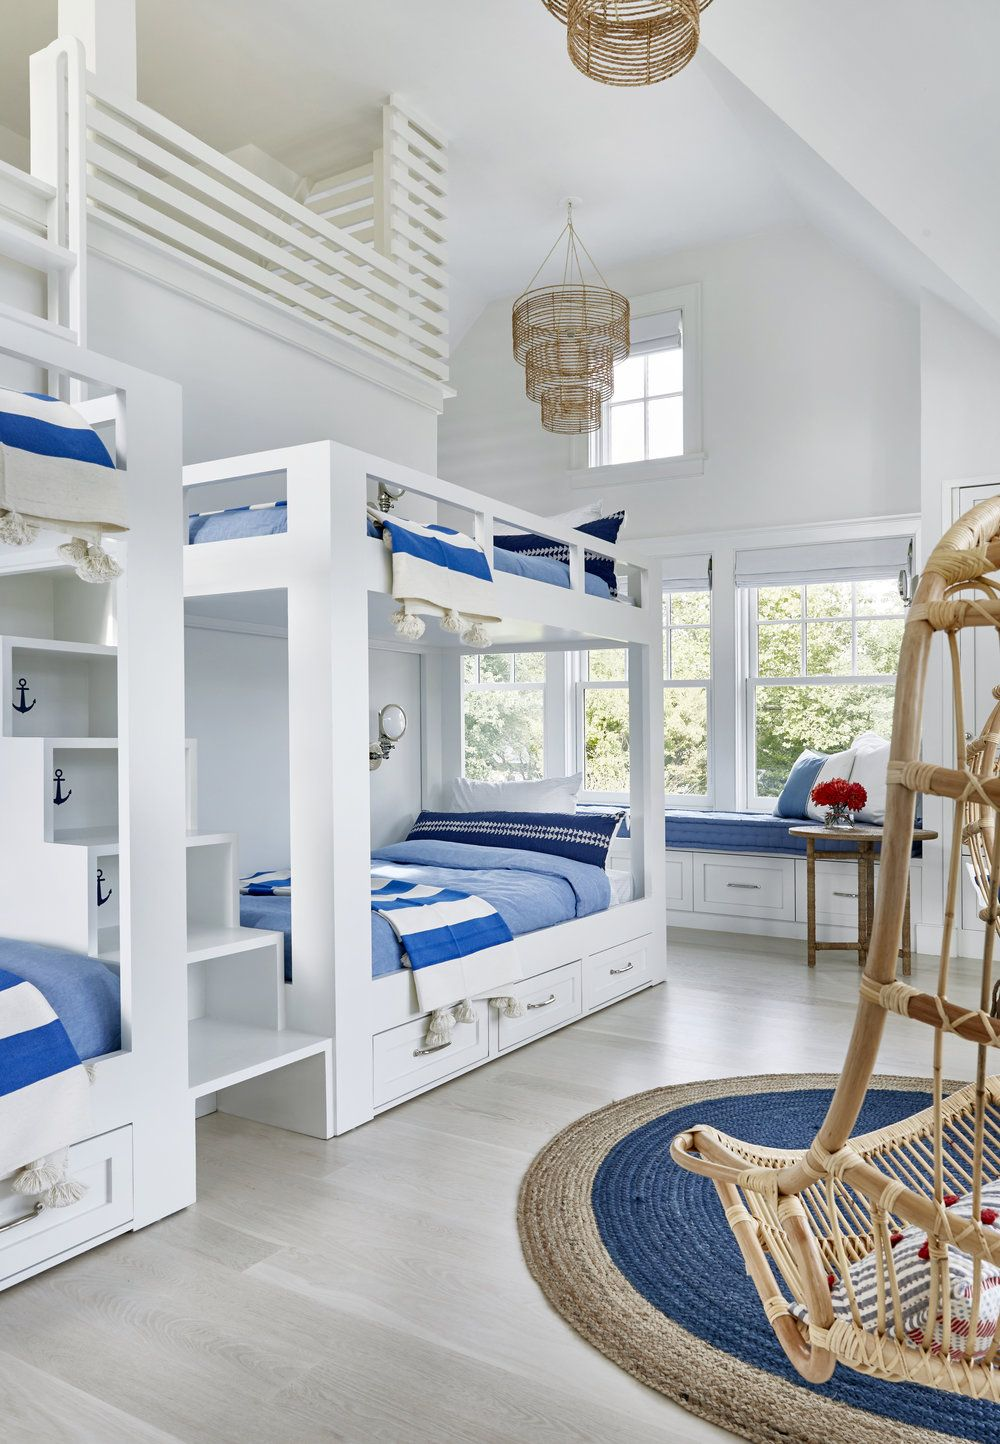 Cute Bunk Beds In A Coastal Kids Room Nautical Beachy Chandeliers Bamboo Rattan Blue And White